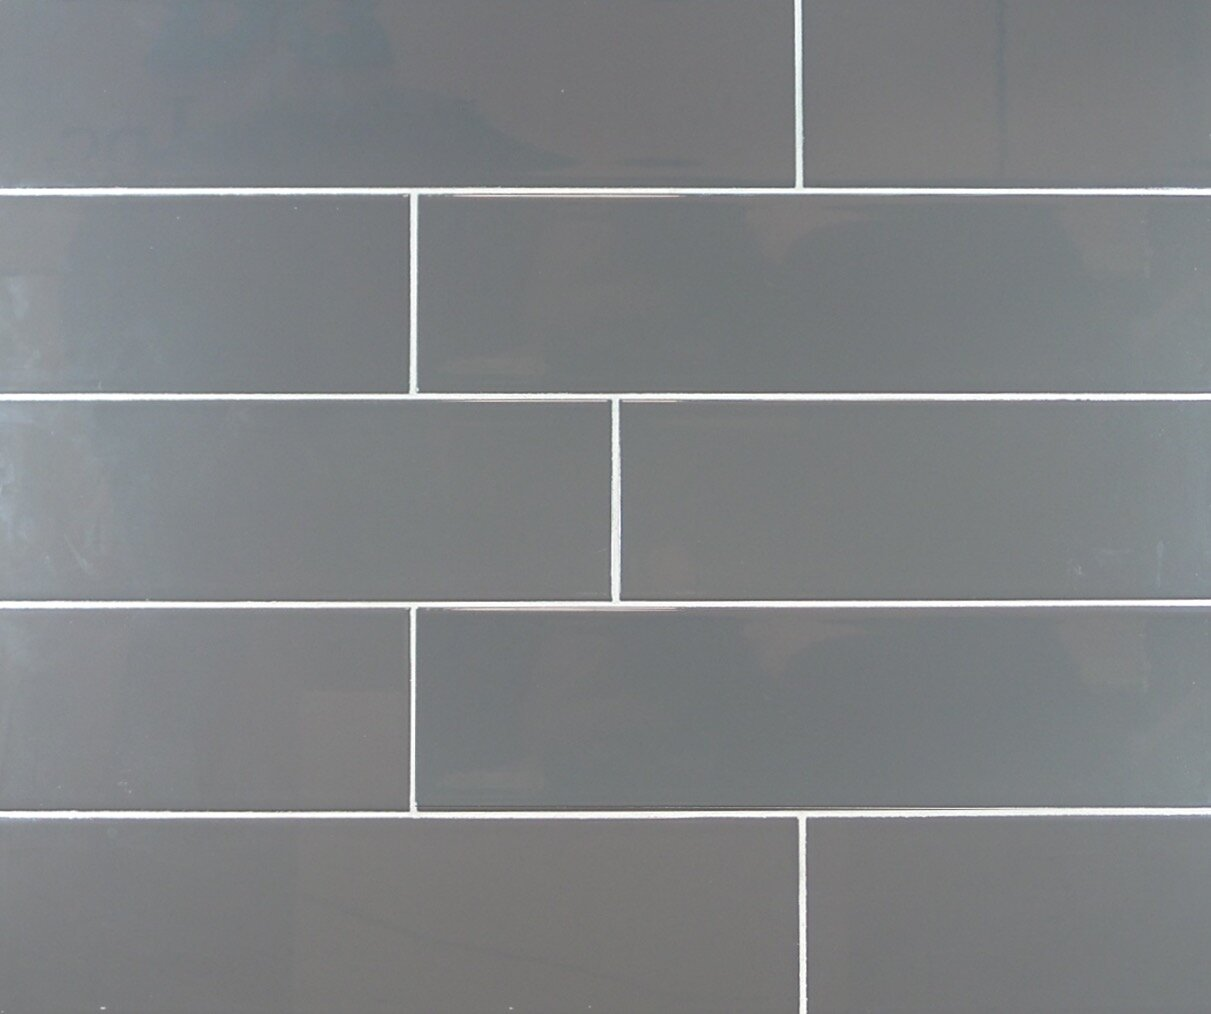 Clic 4 X 16 Ceramic Subway Tile